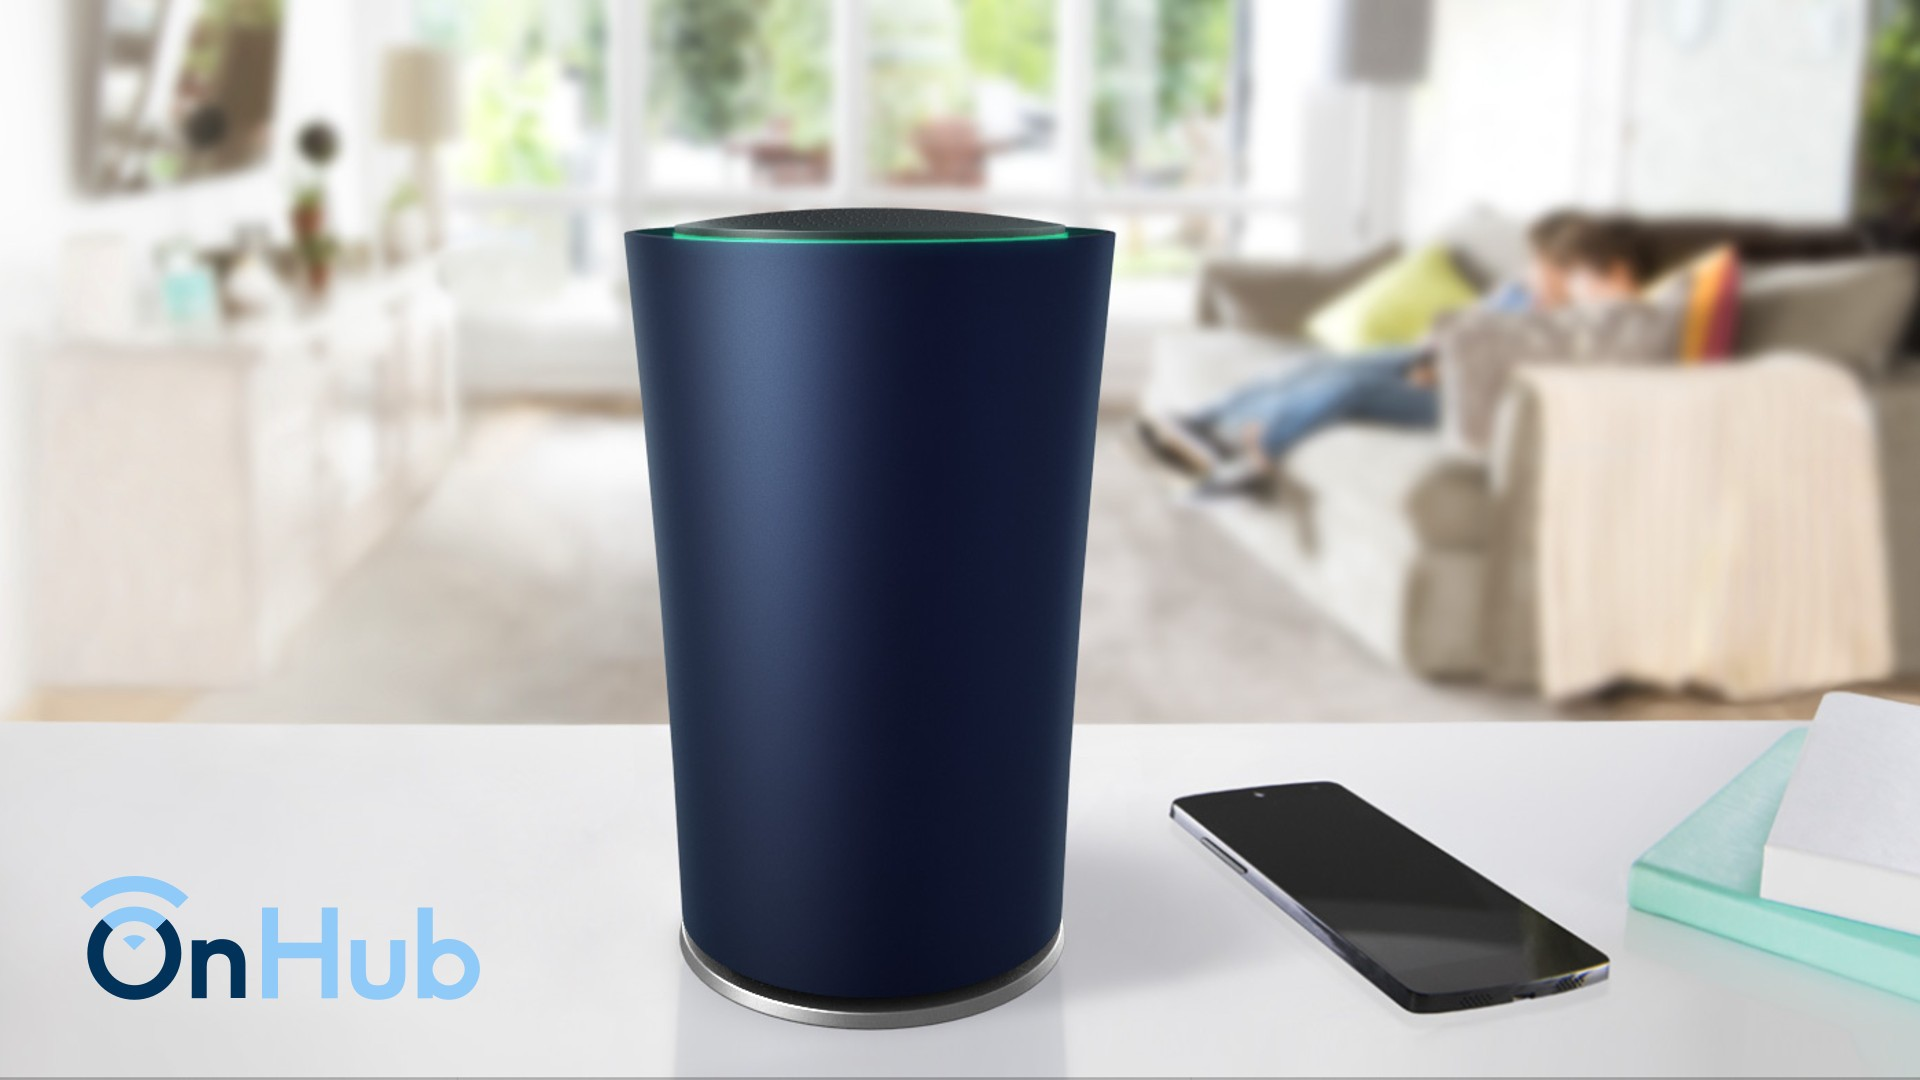 onhub-featured